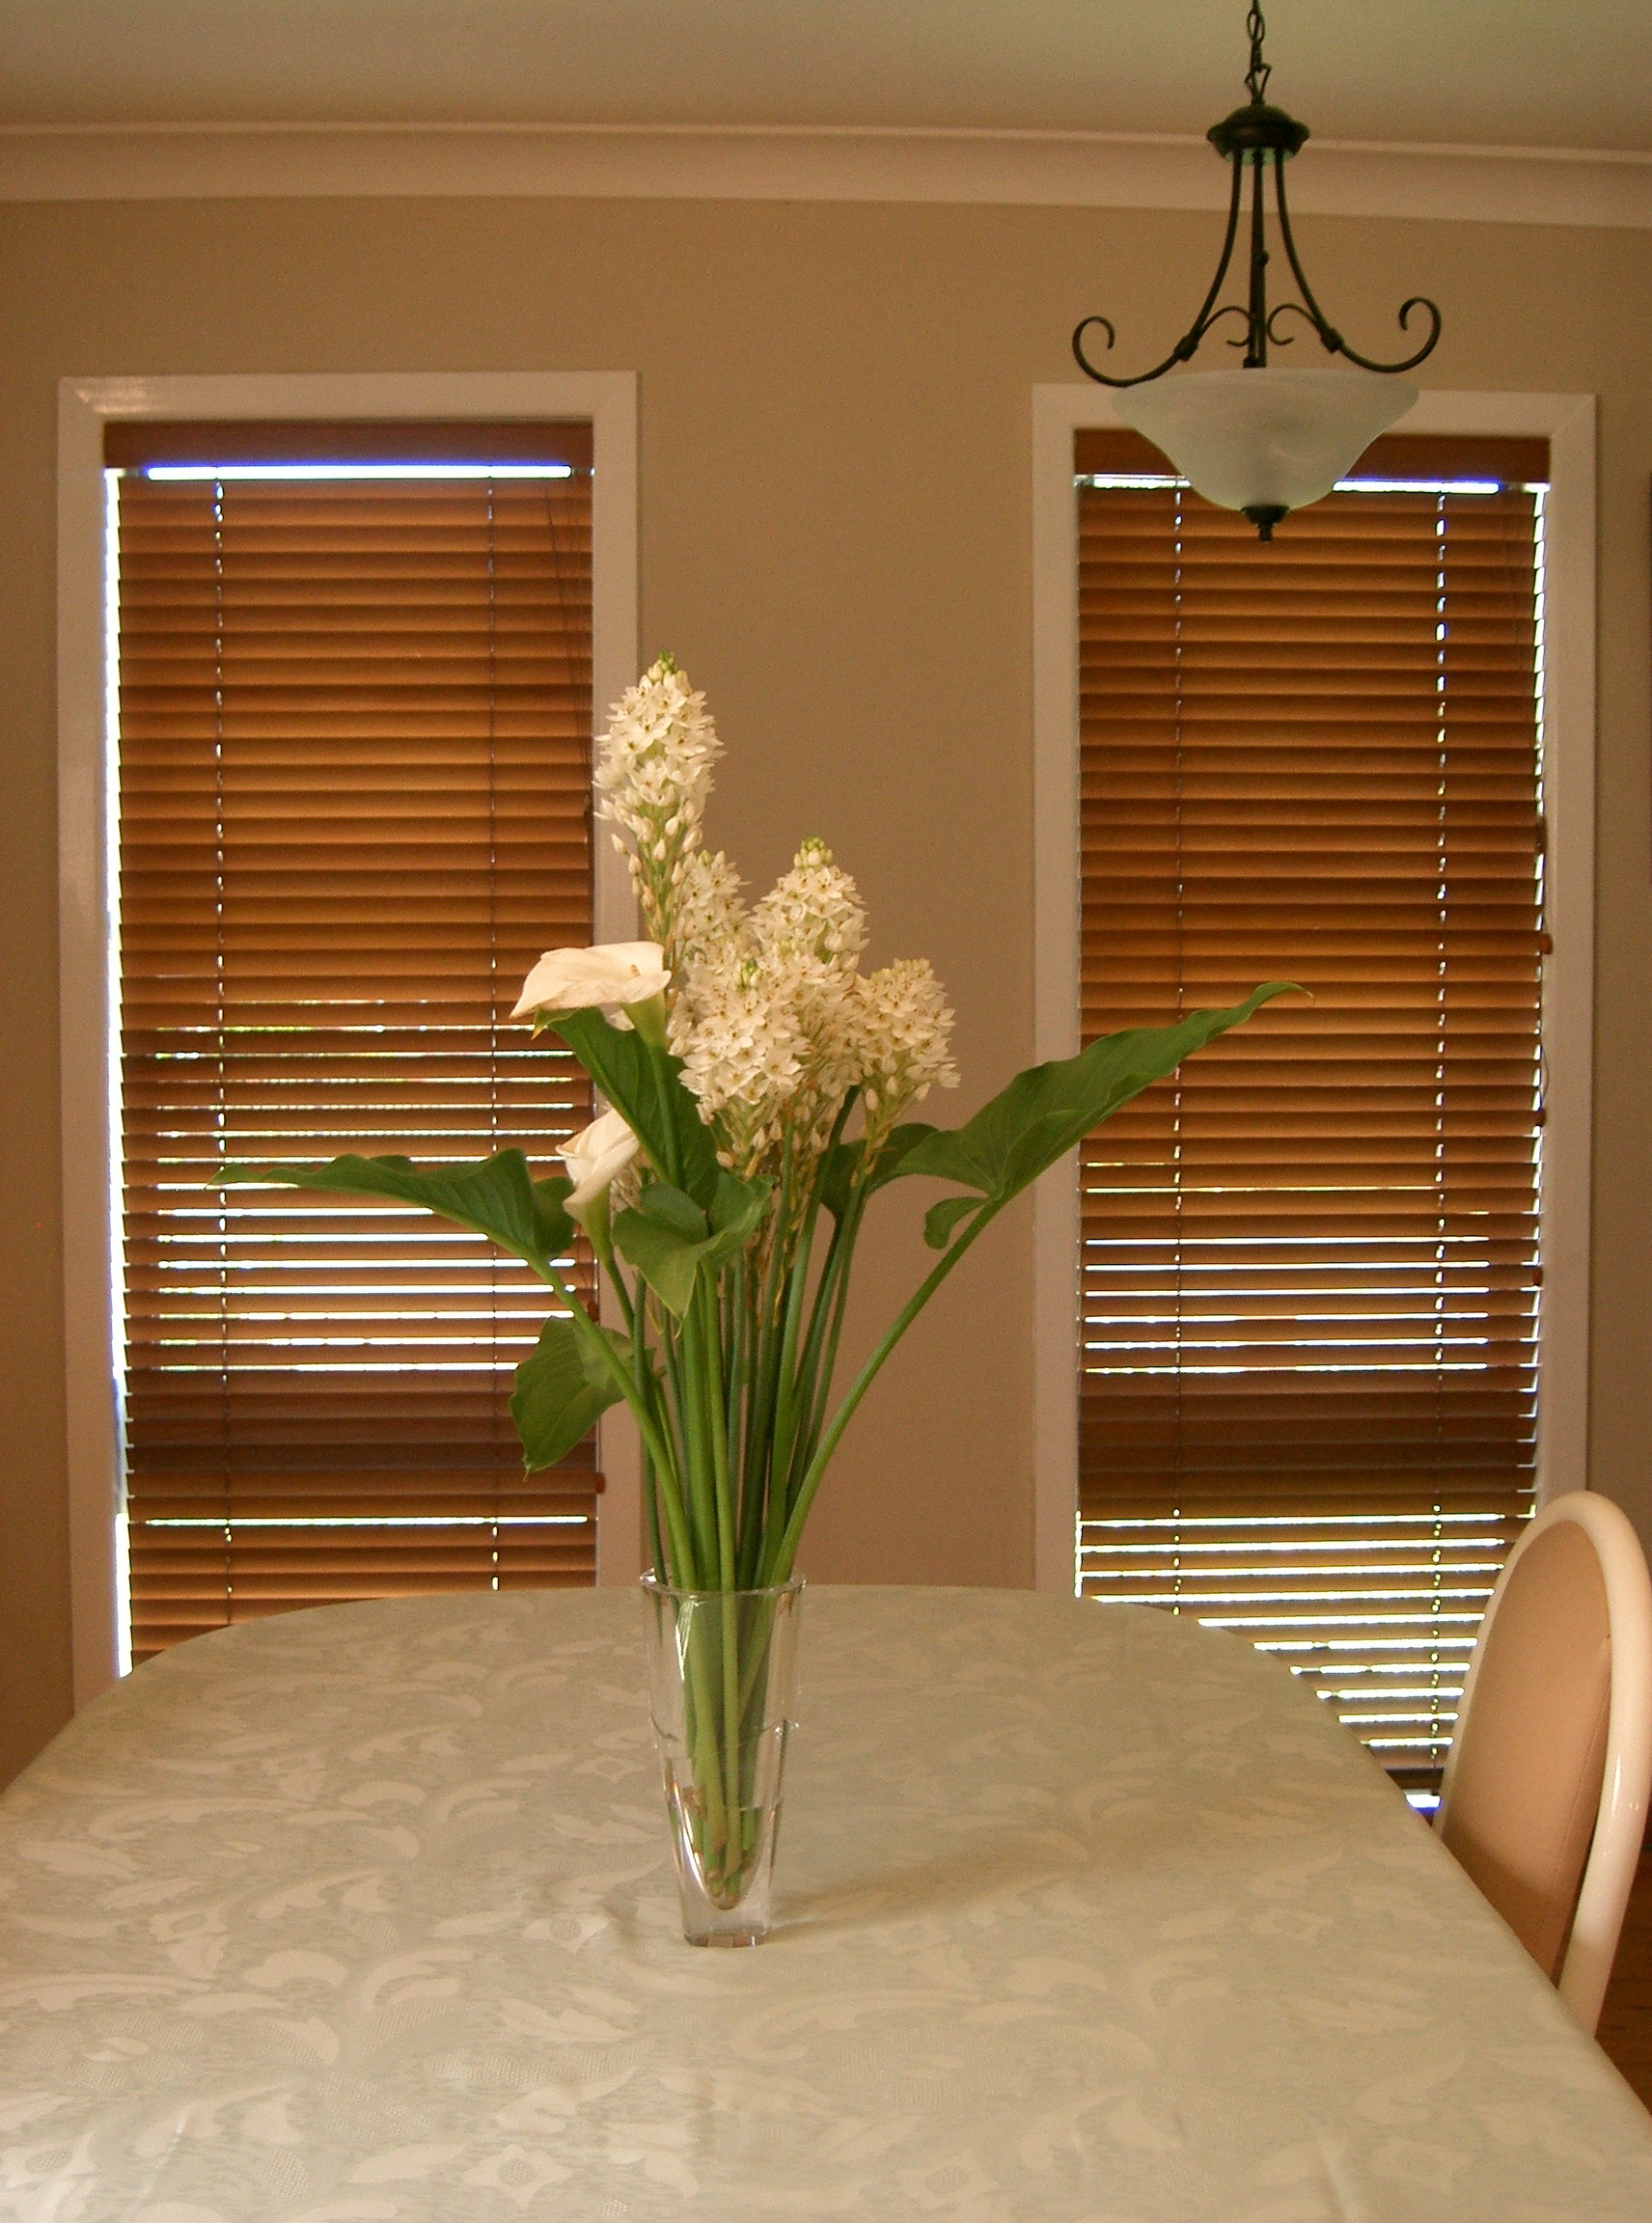 cleaning wikihow to wood blinds step ways clean